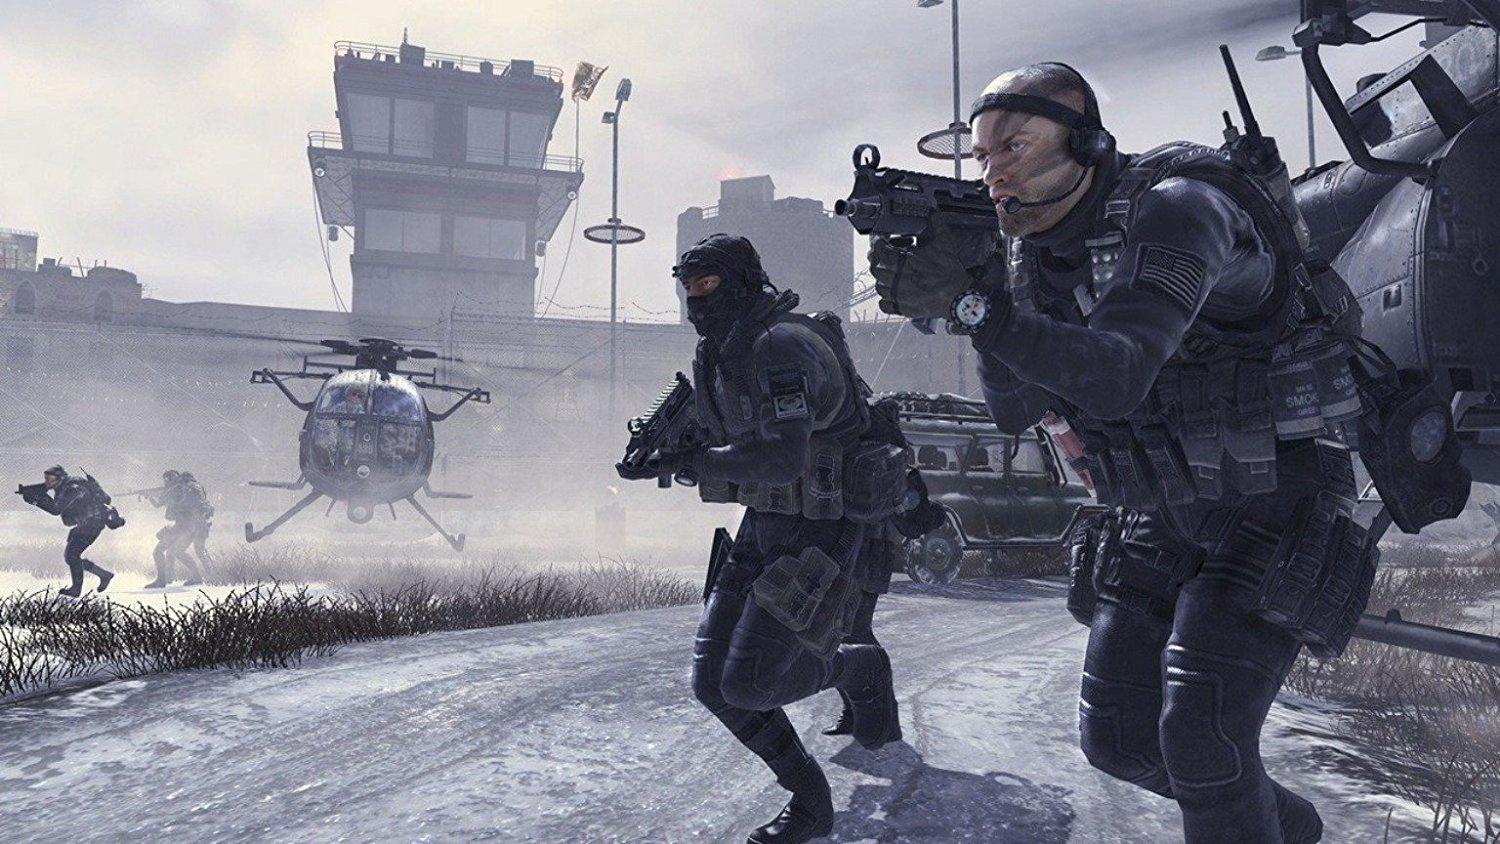 New call of duty release date in Sydney